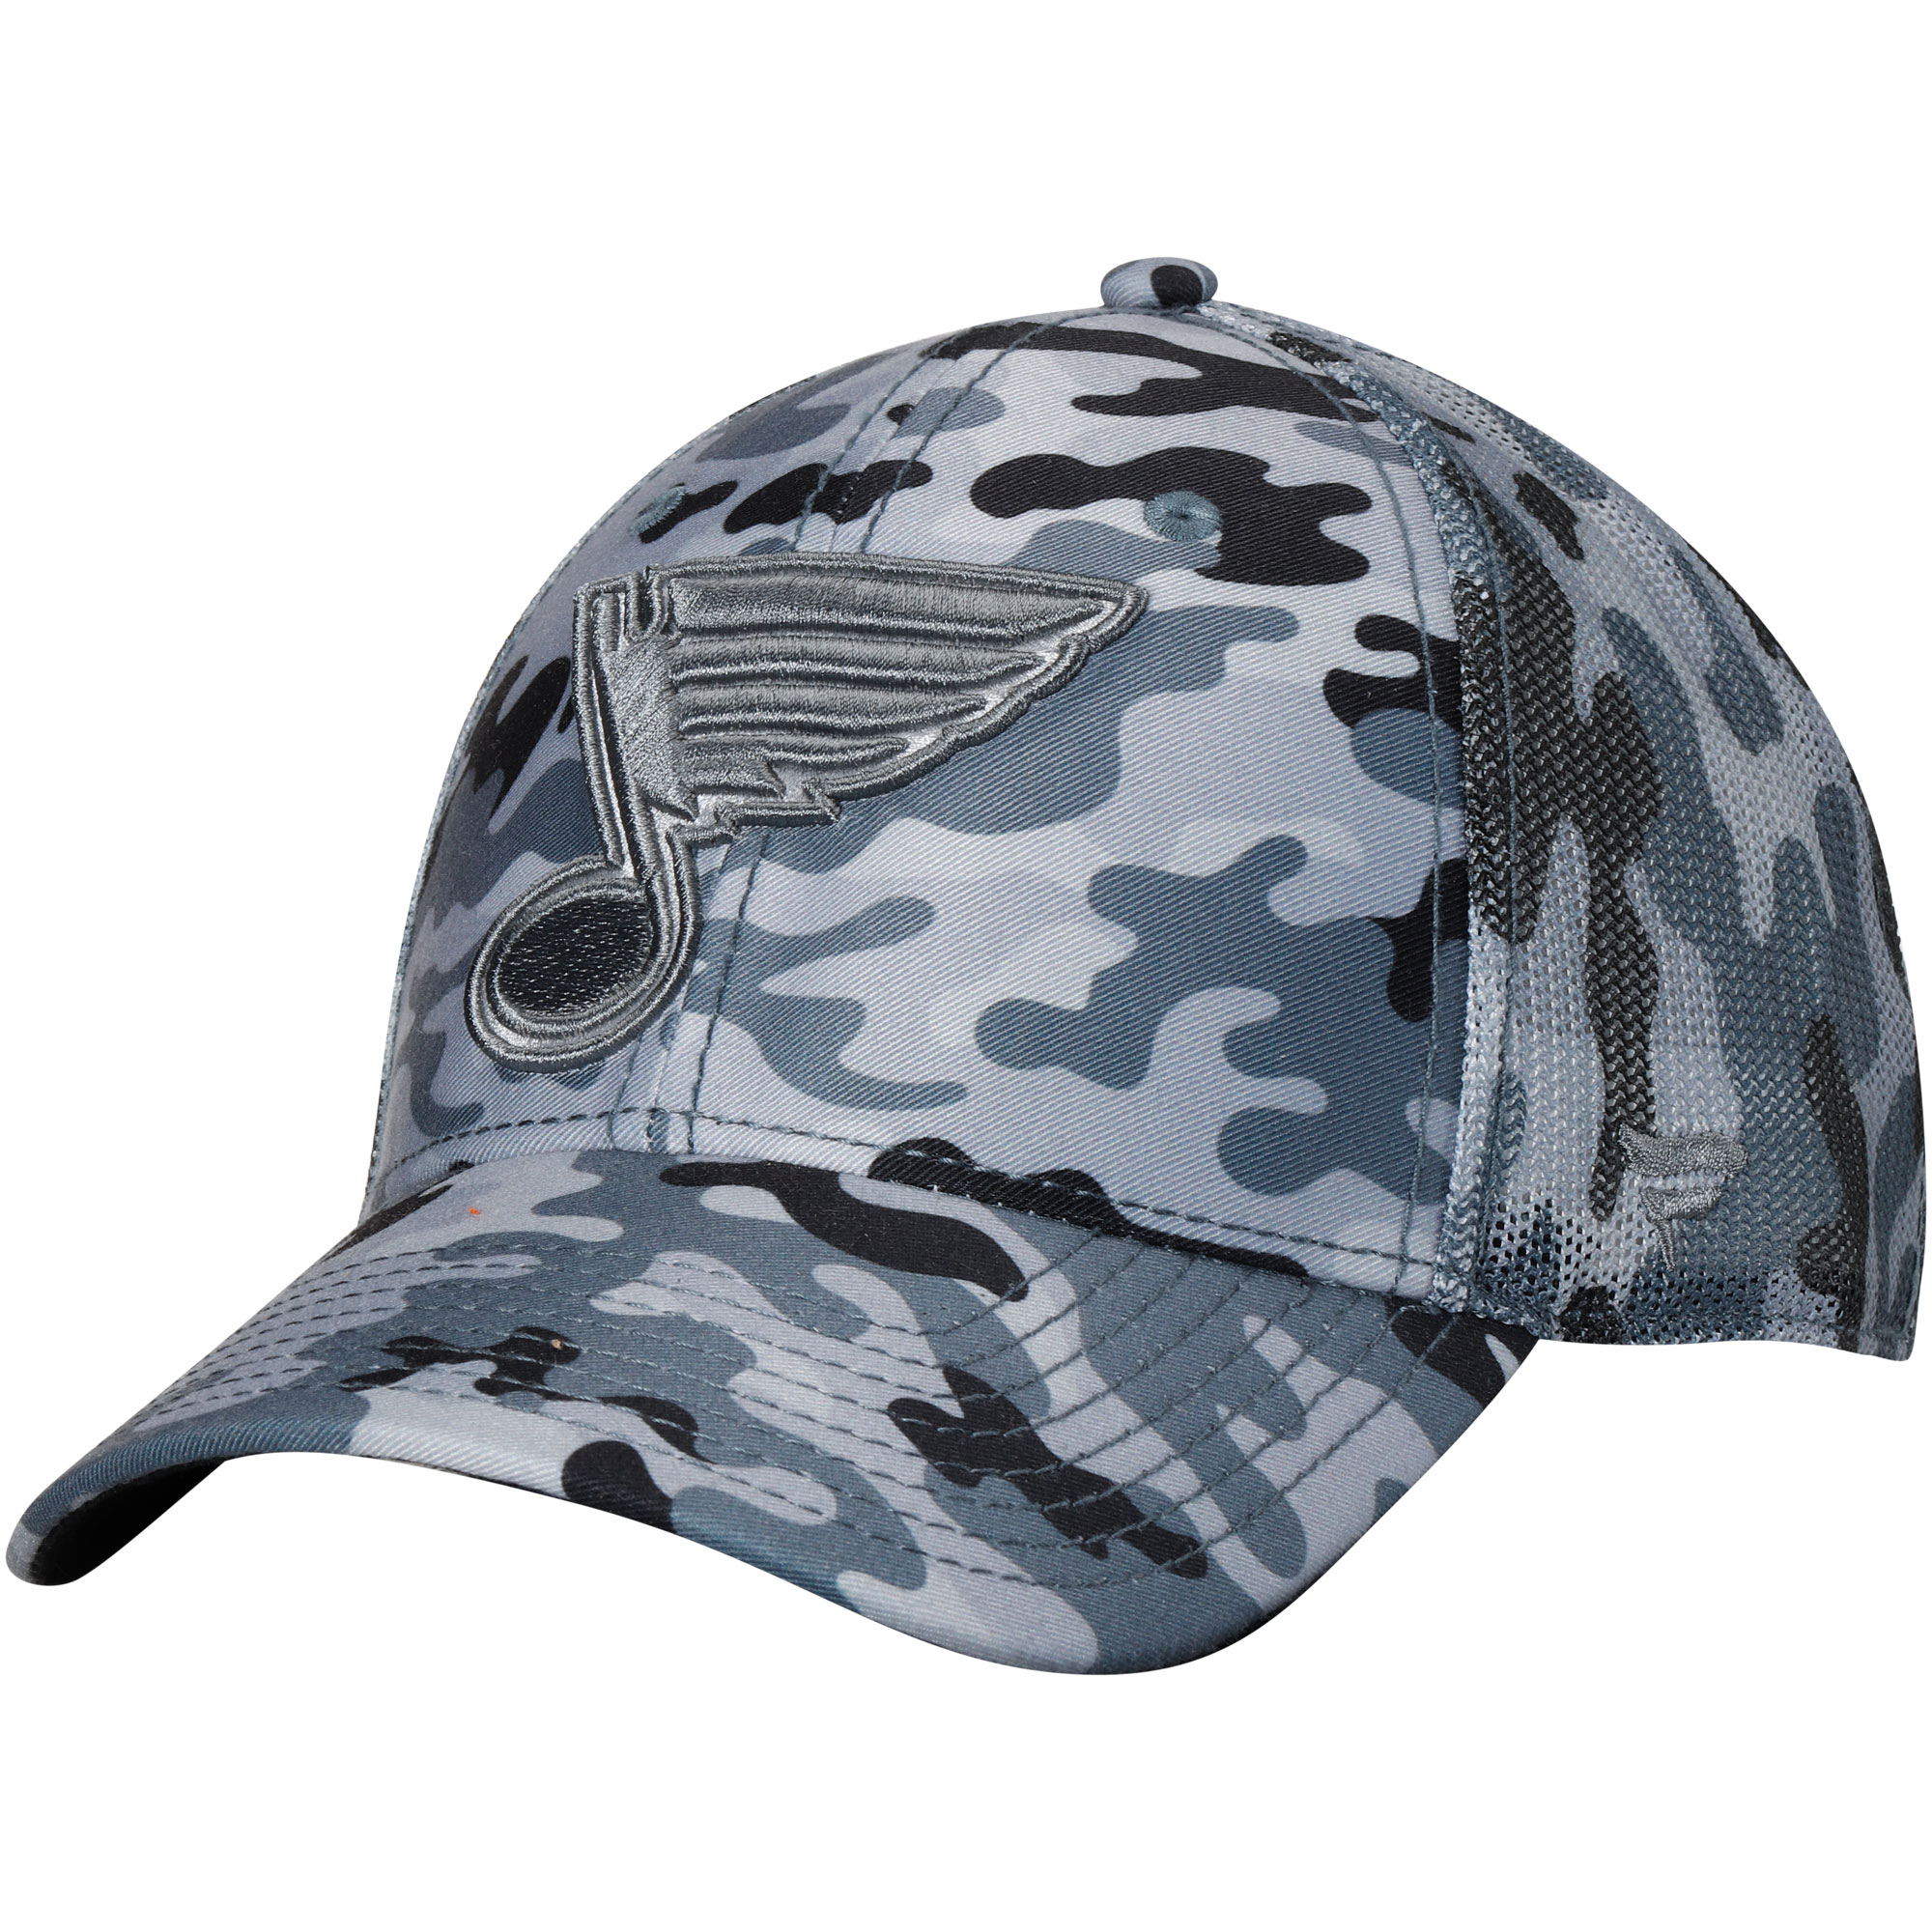 St. Louis Blues Fanatics Branded Urban Trucker Adjustable Hat - Camo/Gray - OSFA